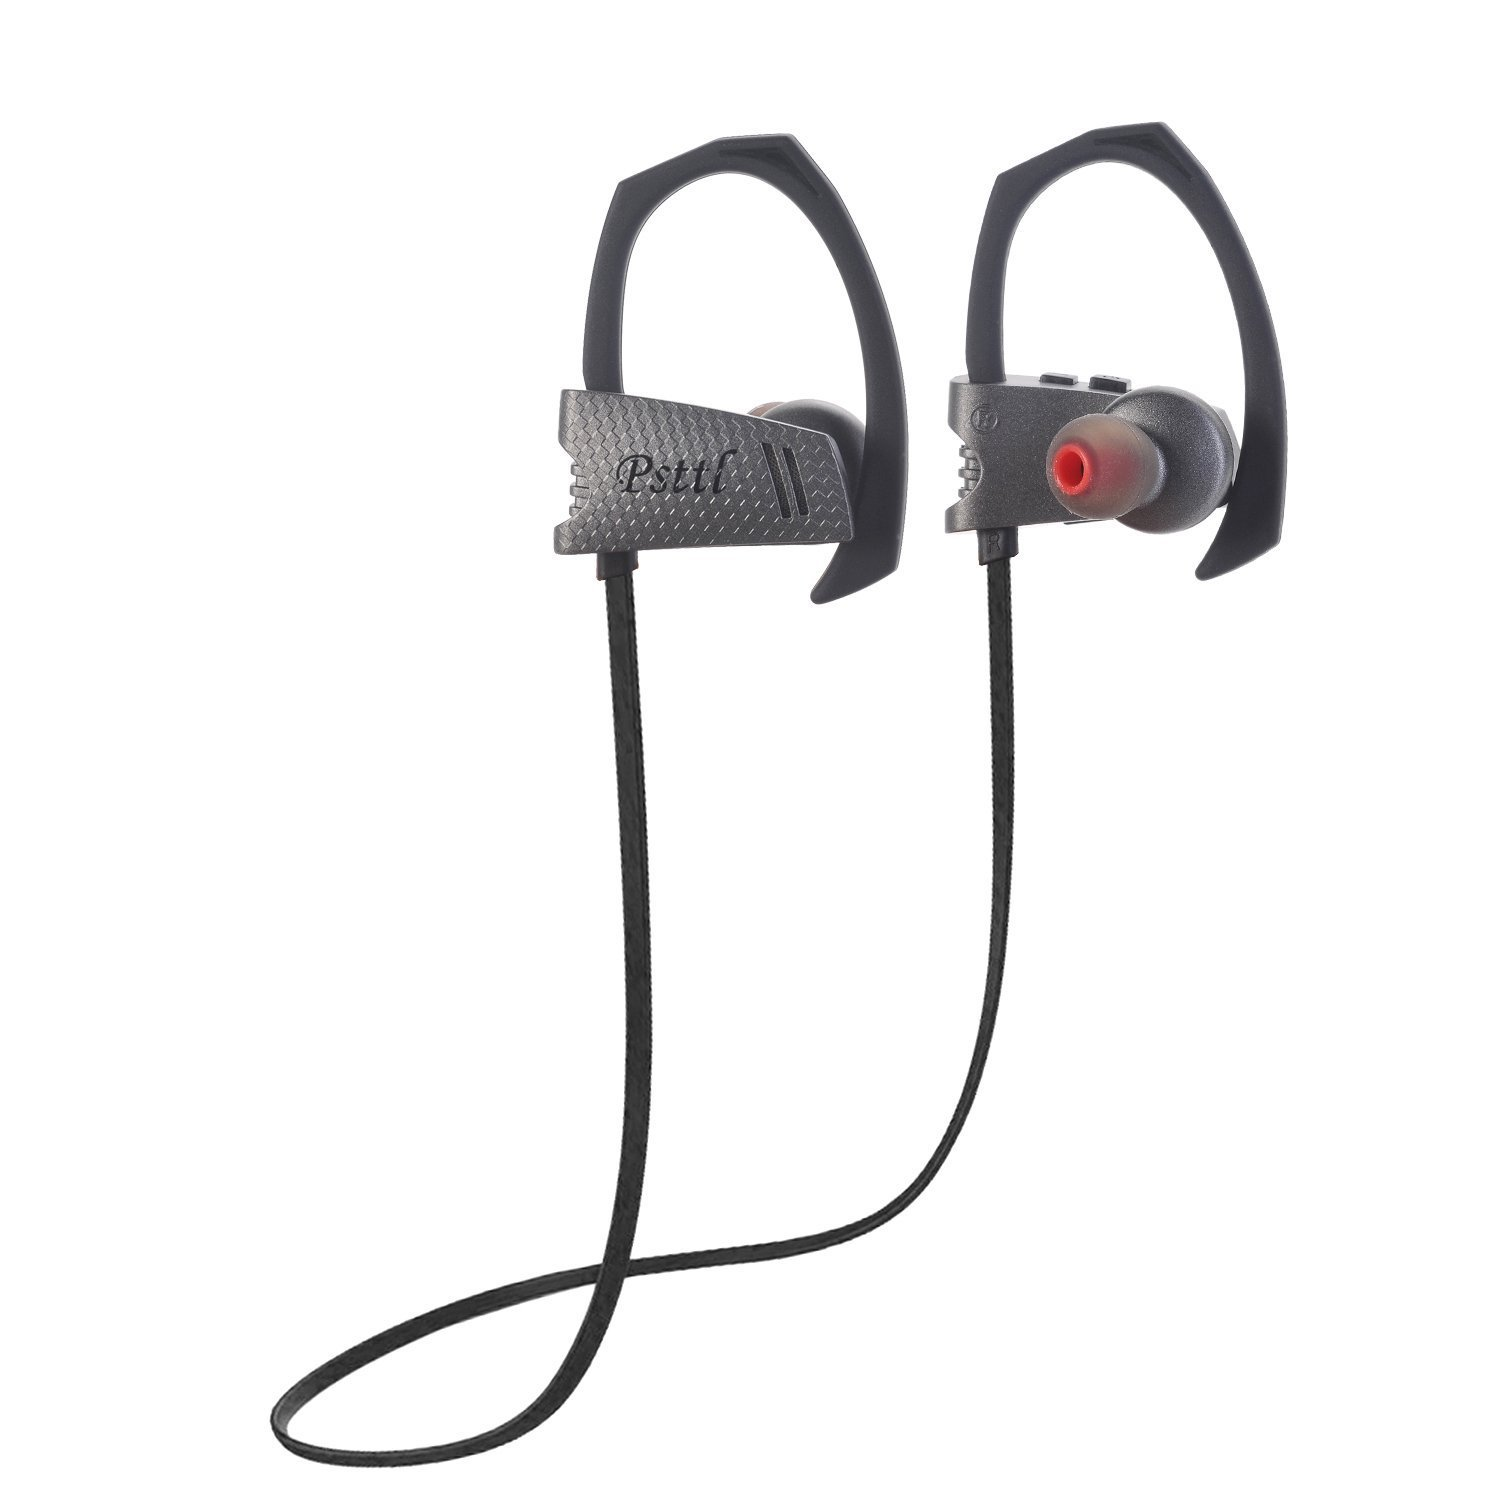 Bluetooth HIFI Stereo Earbuds (Q9-Gray) Clip On Ear Used for Sports Running Workout Sweat Proof/These All Sound Equally as Great!!! 80% less than Beats with same sound quality!